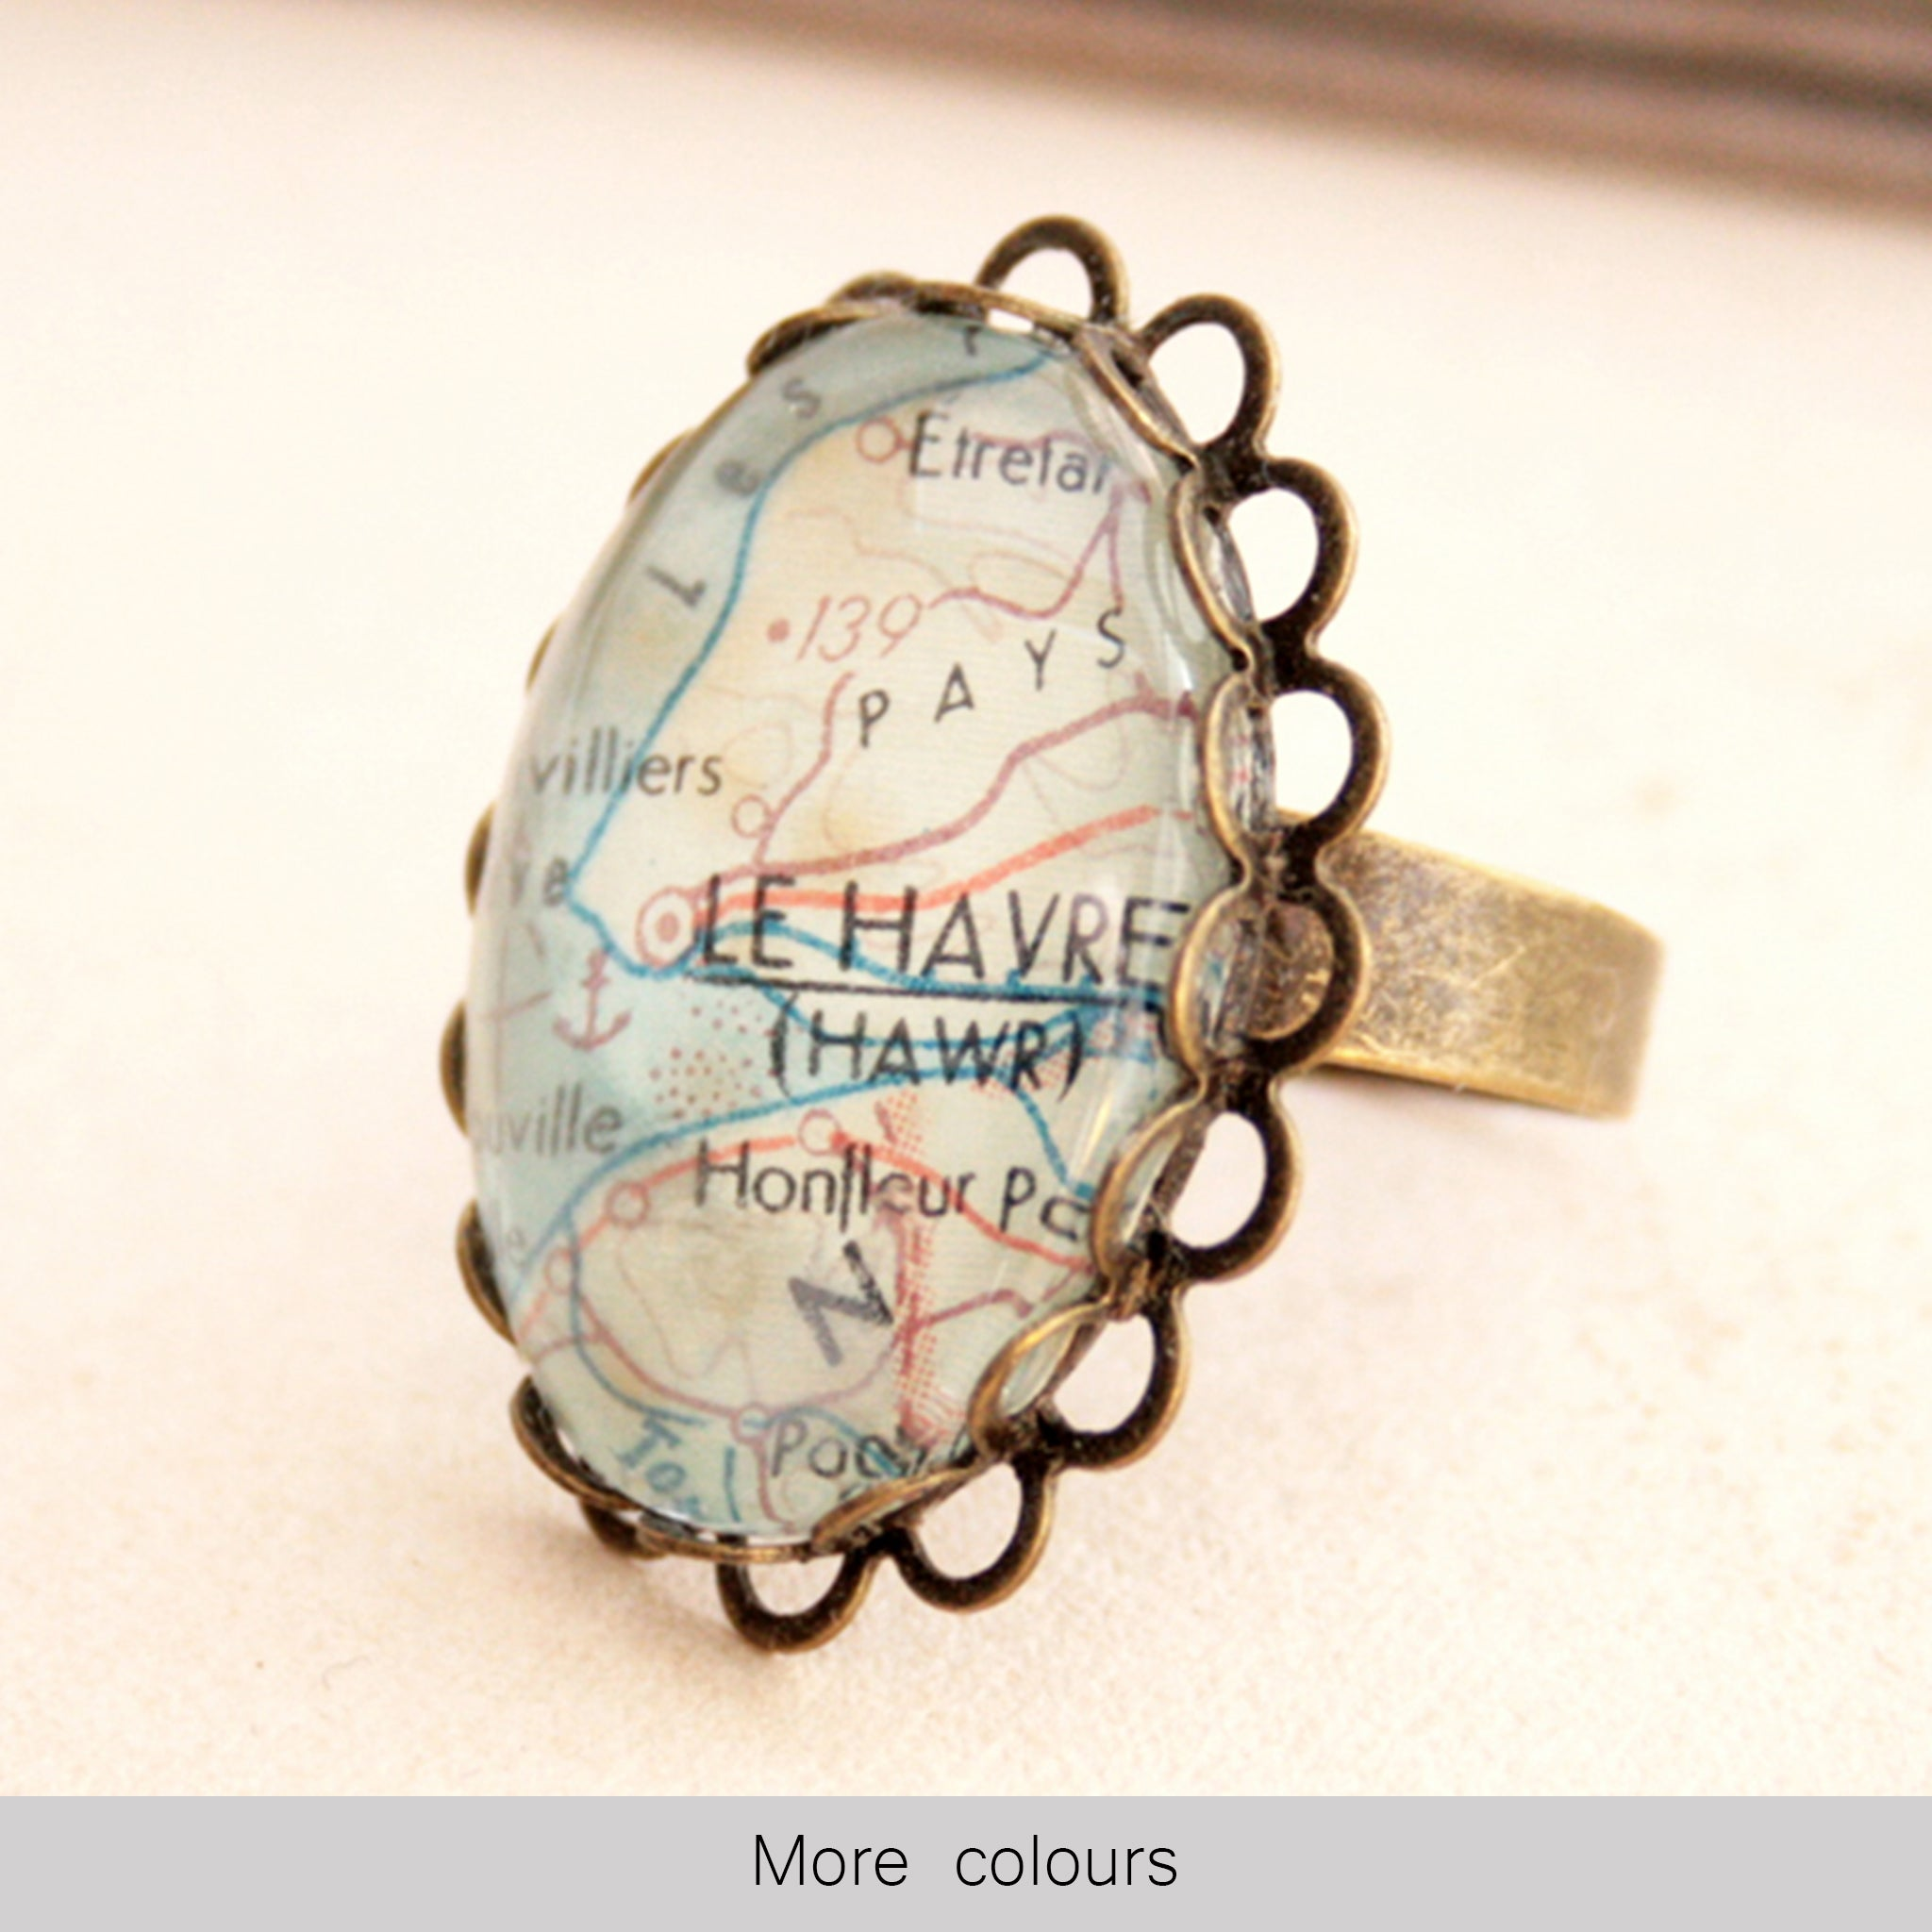 Oval bronze personalised ring featuring map of Le Havre